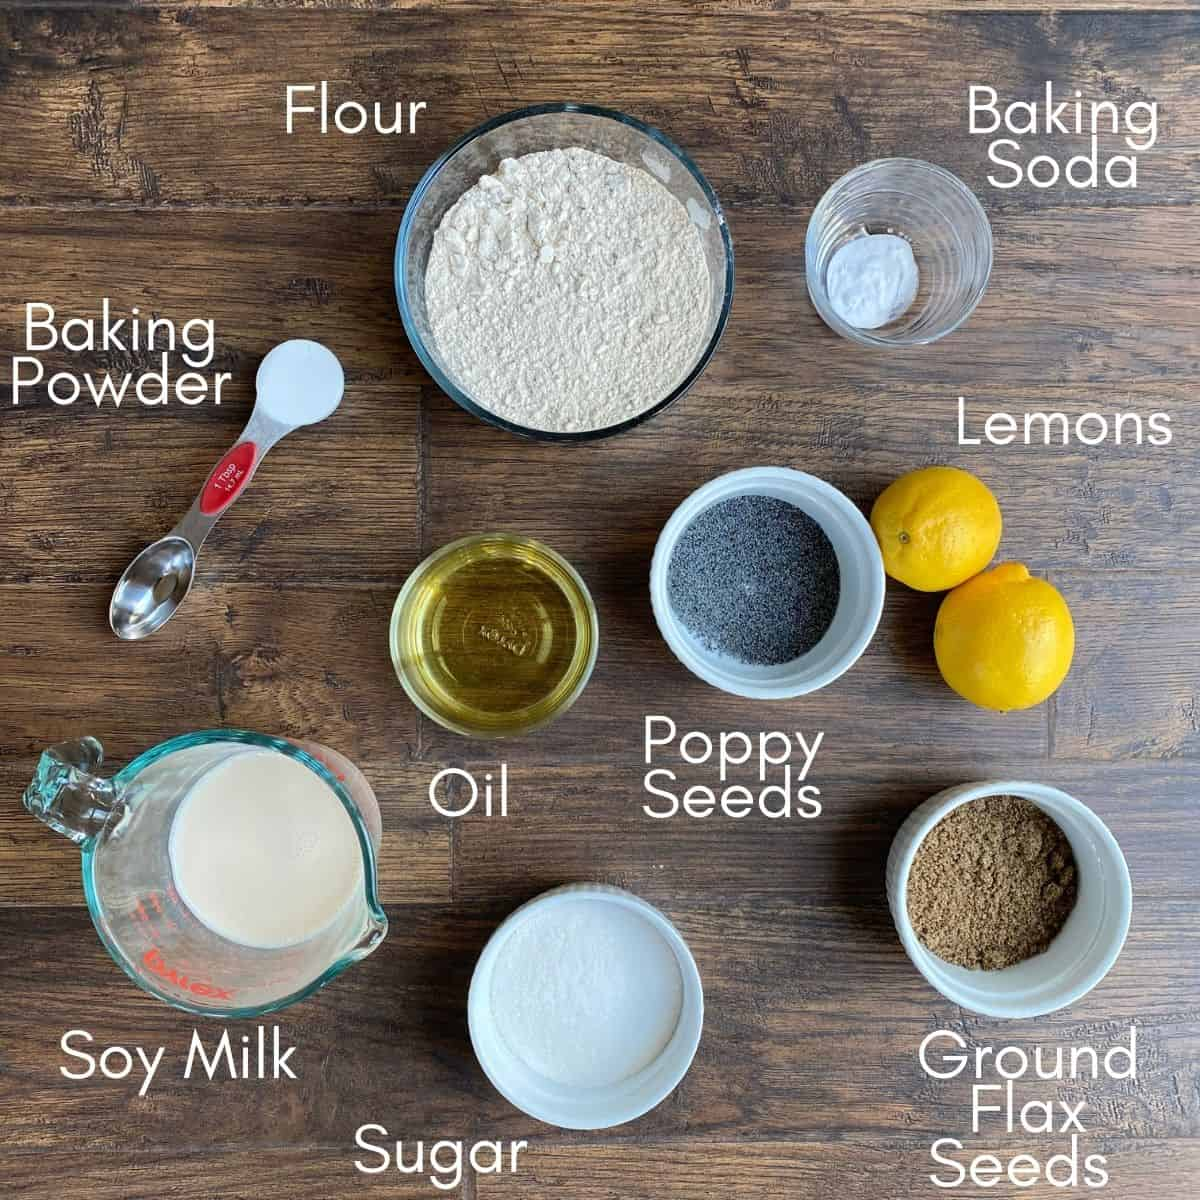 Ingredients for muffins: Flour, baking powder, baking soda, oil, sugar, poppy seeds, lemons, flax seeds, soy milk